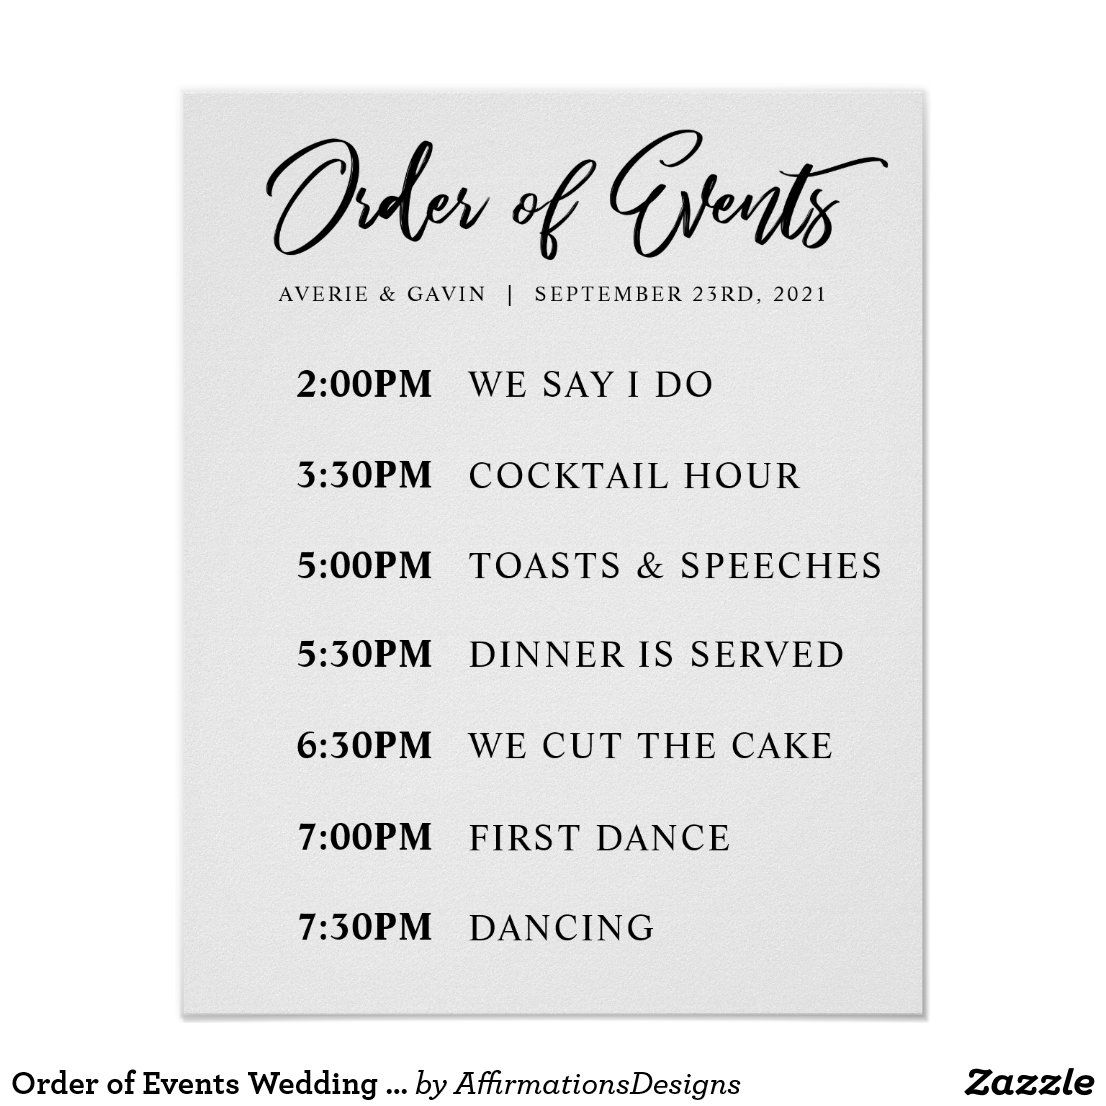 Order Of Events Wedding Day Schedule Poster Zazzle Com In 2020 Wedding Day Schedule Wedding Reception Schedule Wedding Reception Timeline